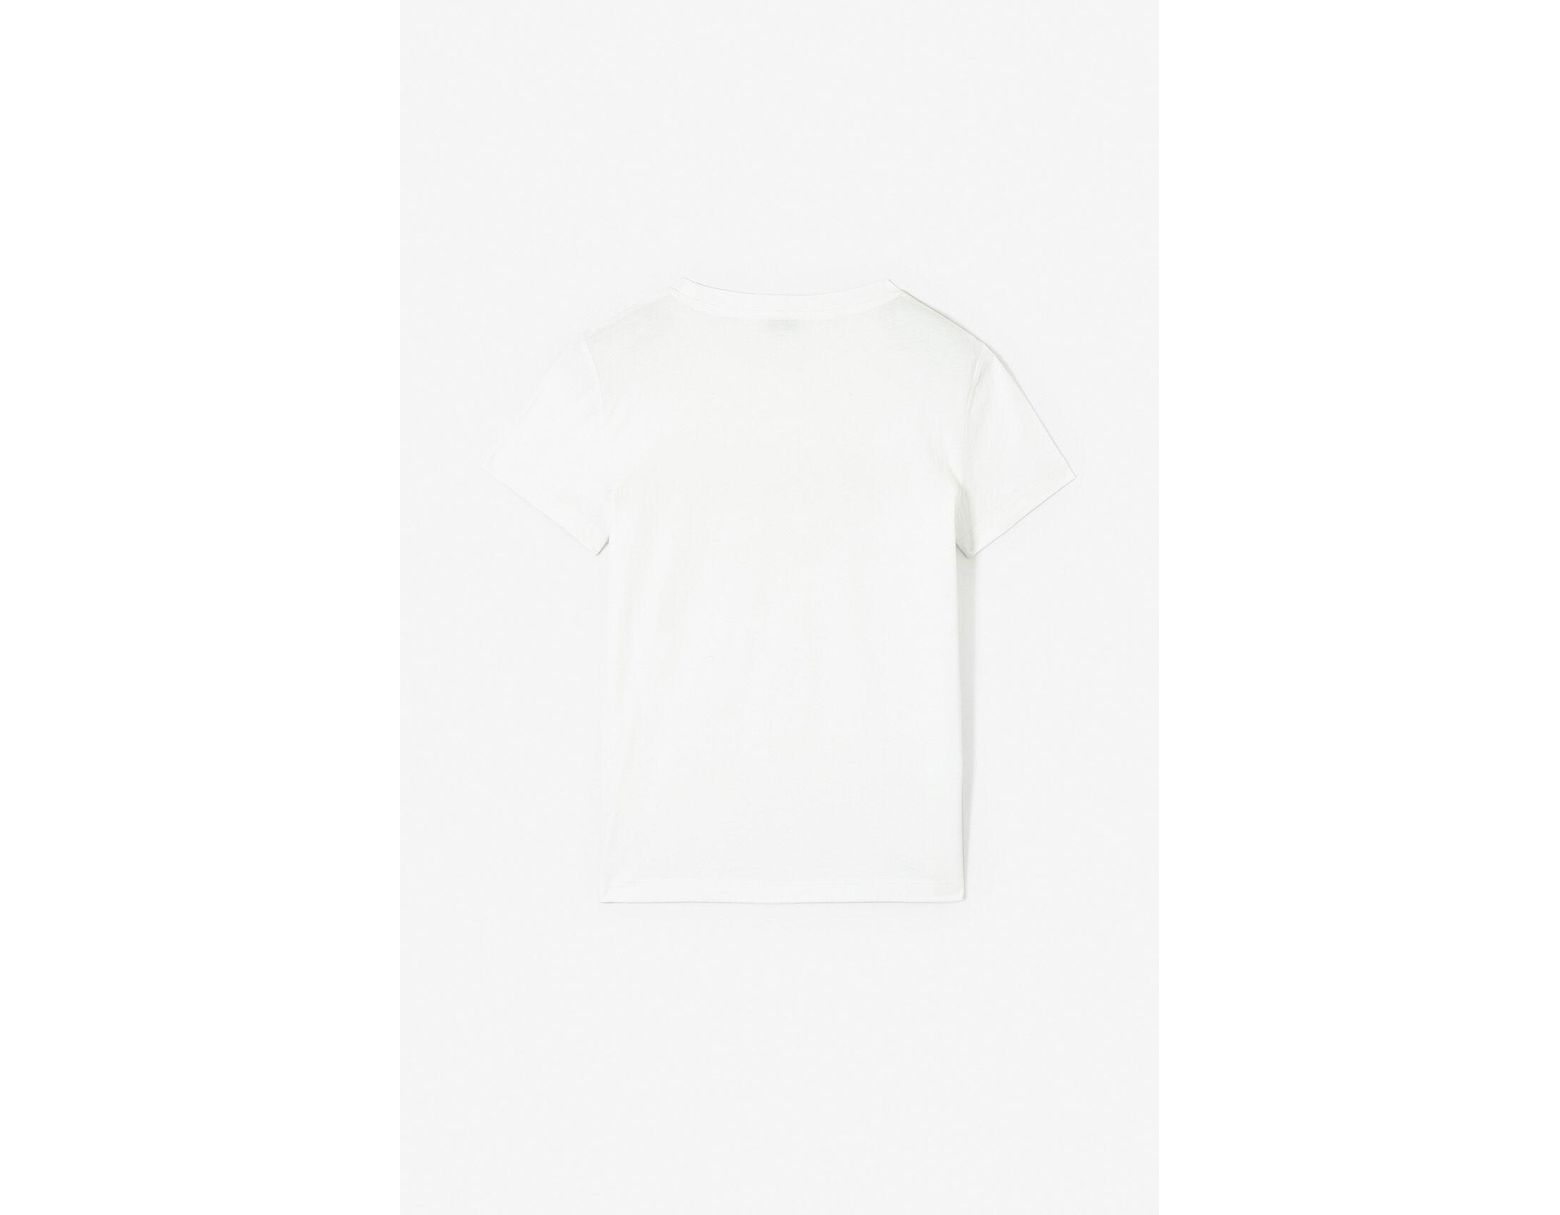 7cb5732c9bf8 KENZO 'dots' Paris T-shirt 'high Summer Capsule Collection' White in White  - Lyst